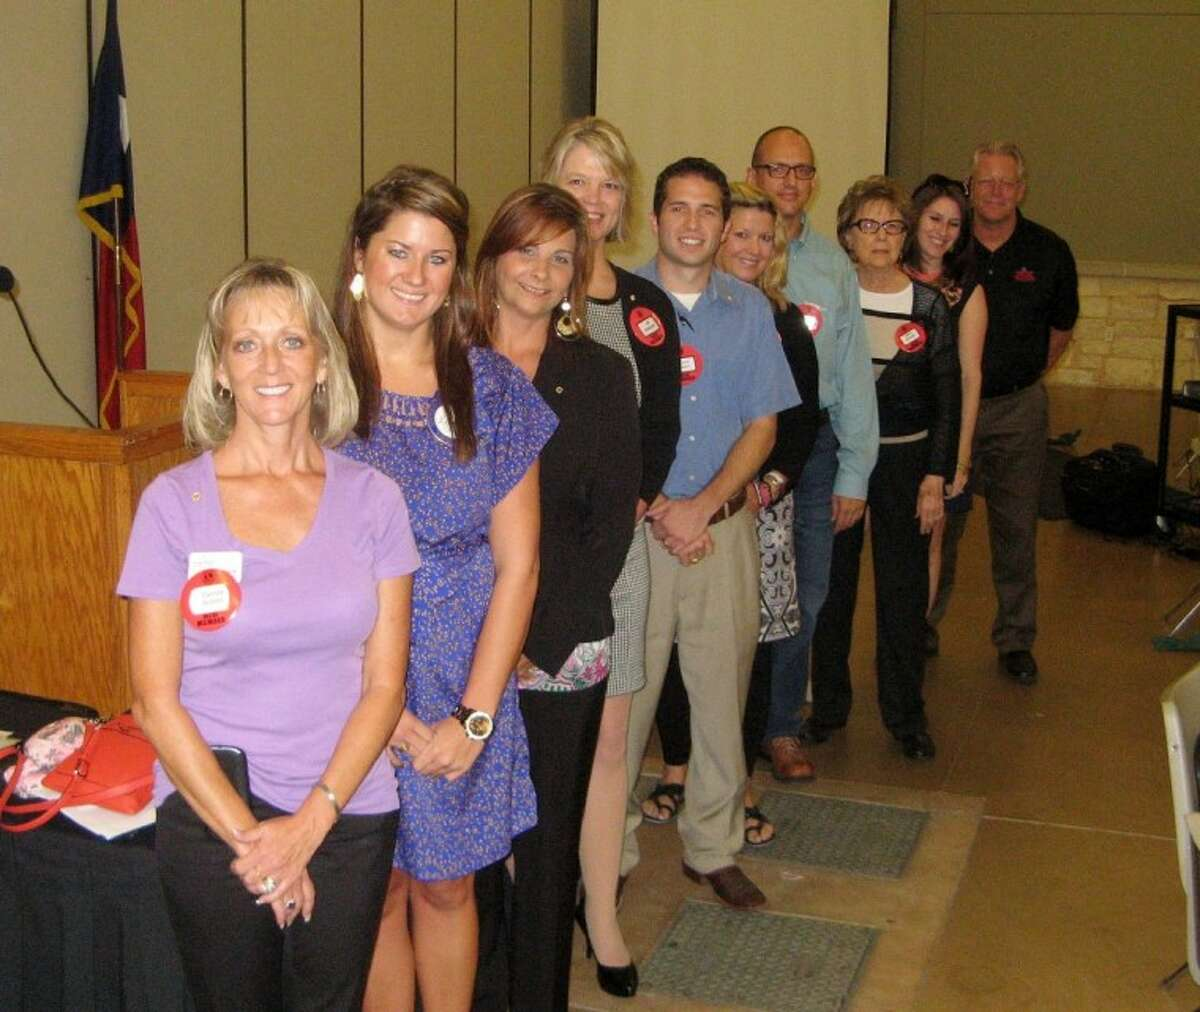 The Conroe Noon Lions Club recently inducted 16 new members. Pictured (front to back) are Cecilia Scholz, Kelley Ringo, Robin Hoy, Jill Driscoll, Patrick Hebert, Phyllis Clary, Erich Shaffer, Aline Arnold, Ashley Norman and Wayne Colby.